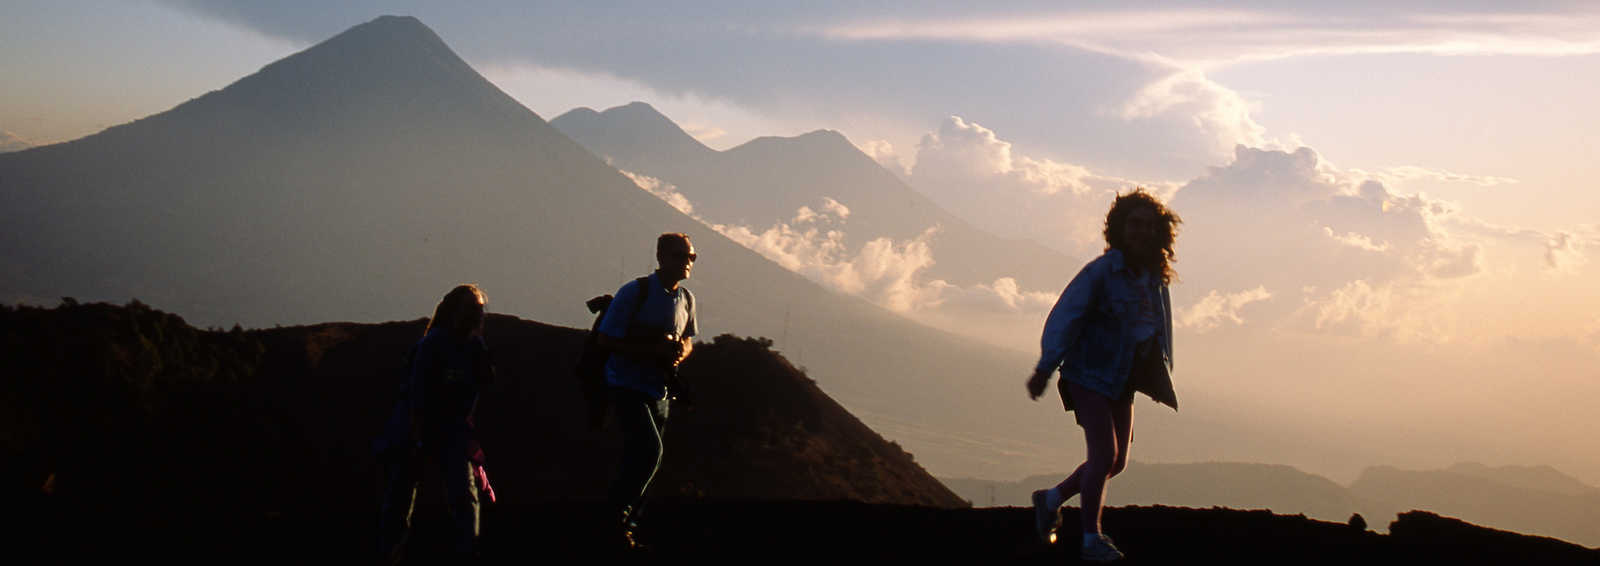 Trekkers on Agua Volcano above Antigua Guatemala